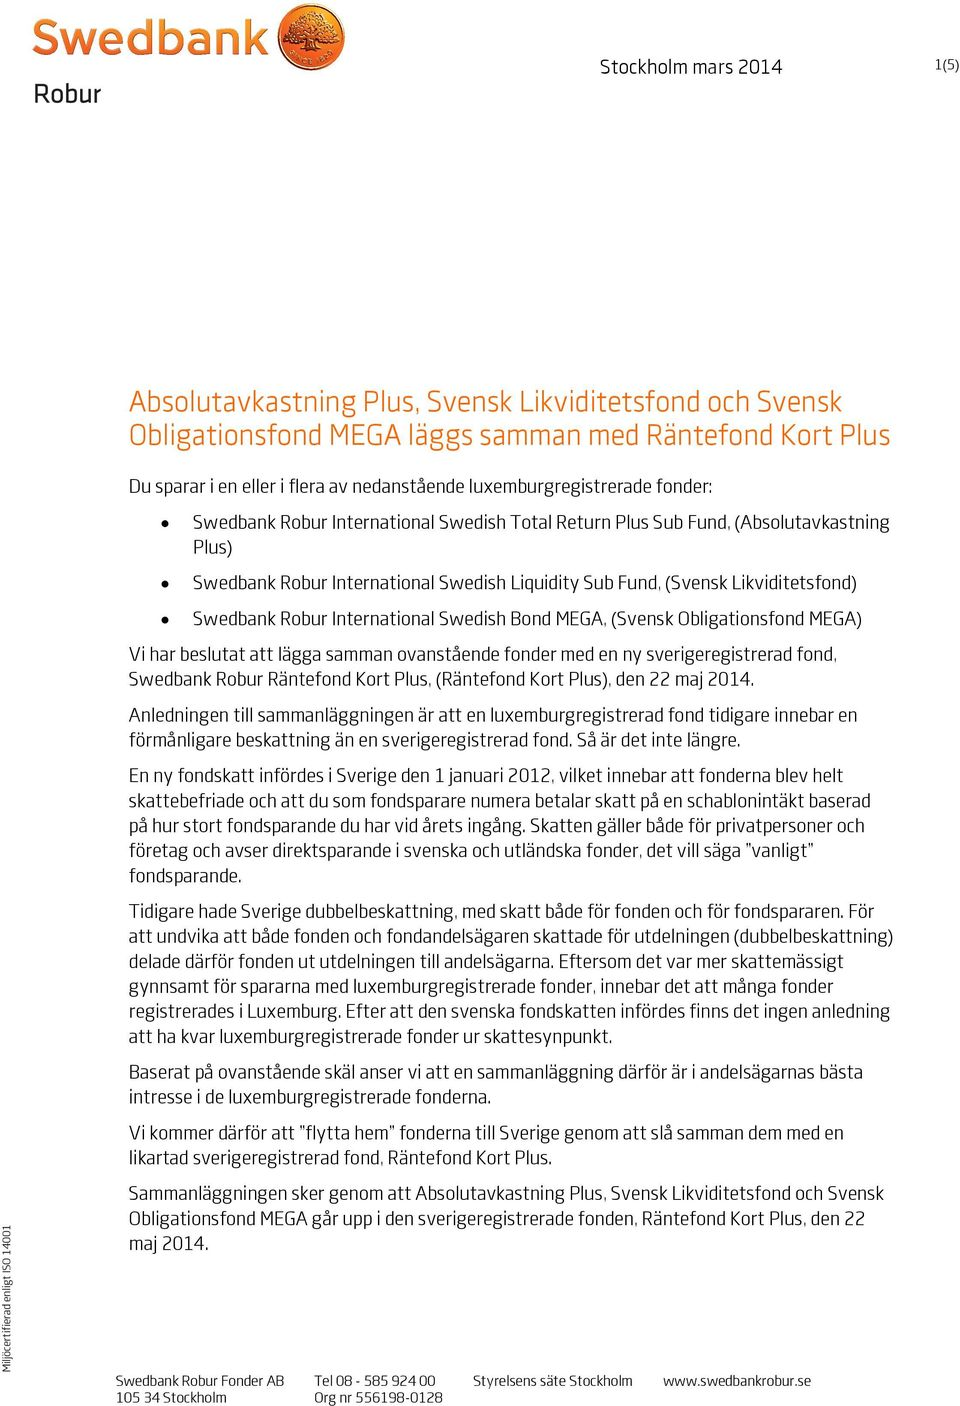 Likviditetsfond) Swedbank Robur International Swedish Bond MEGA, (Svensk Obligationsfond MEGA) Vi har beslutat att lägga samman ovanstående fonder med en ny sverigeregistrerad fond, Swedbank Robur